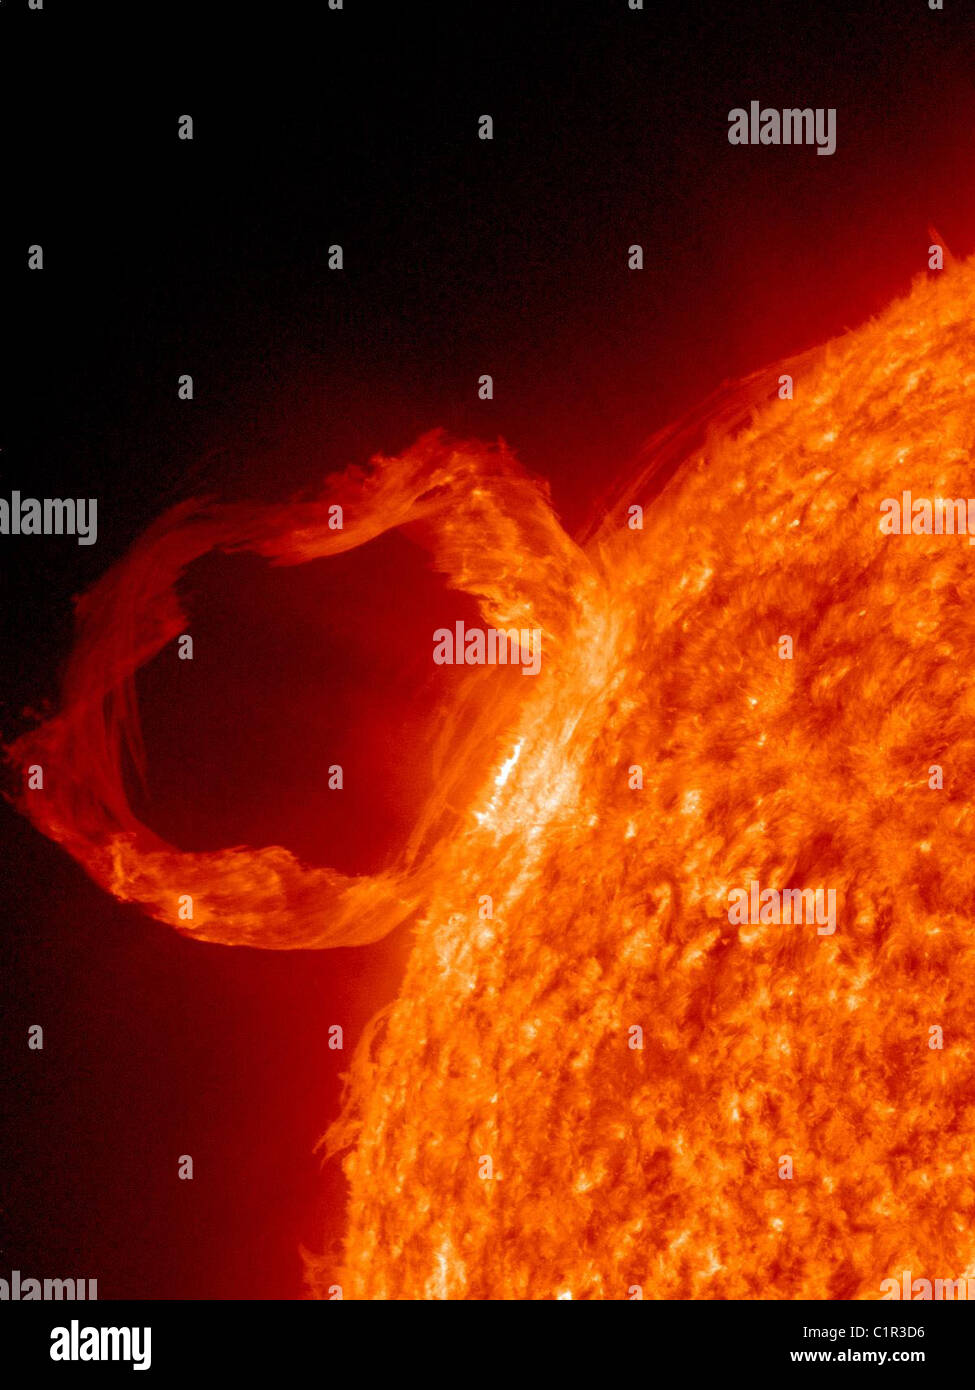 Solar Dynamics Observatory's Atmospheric Imaging Assembly (AIA) shows in great detail a solar prominence  eruption. - Stock Image